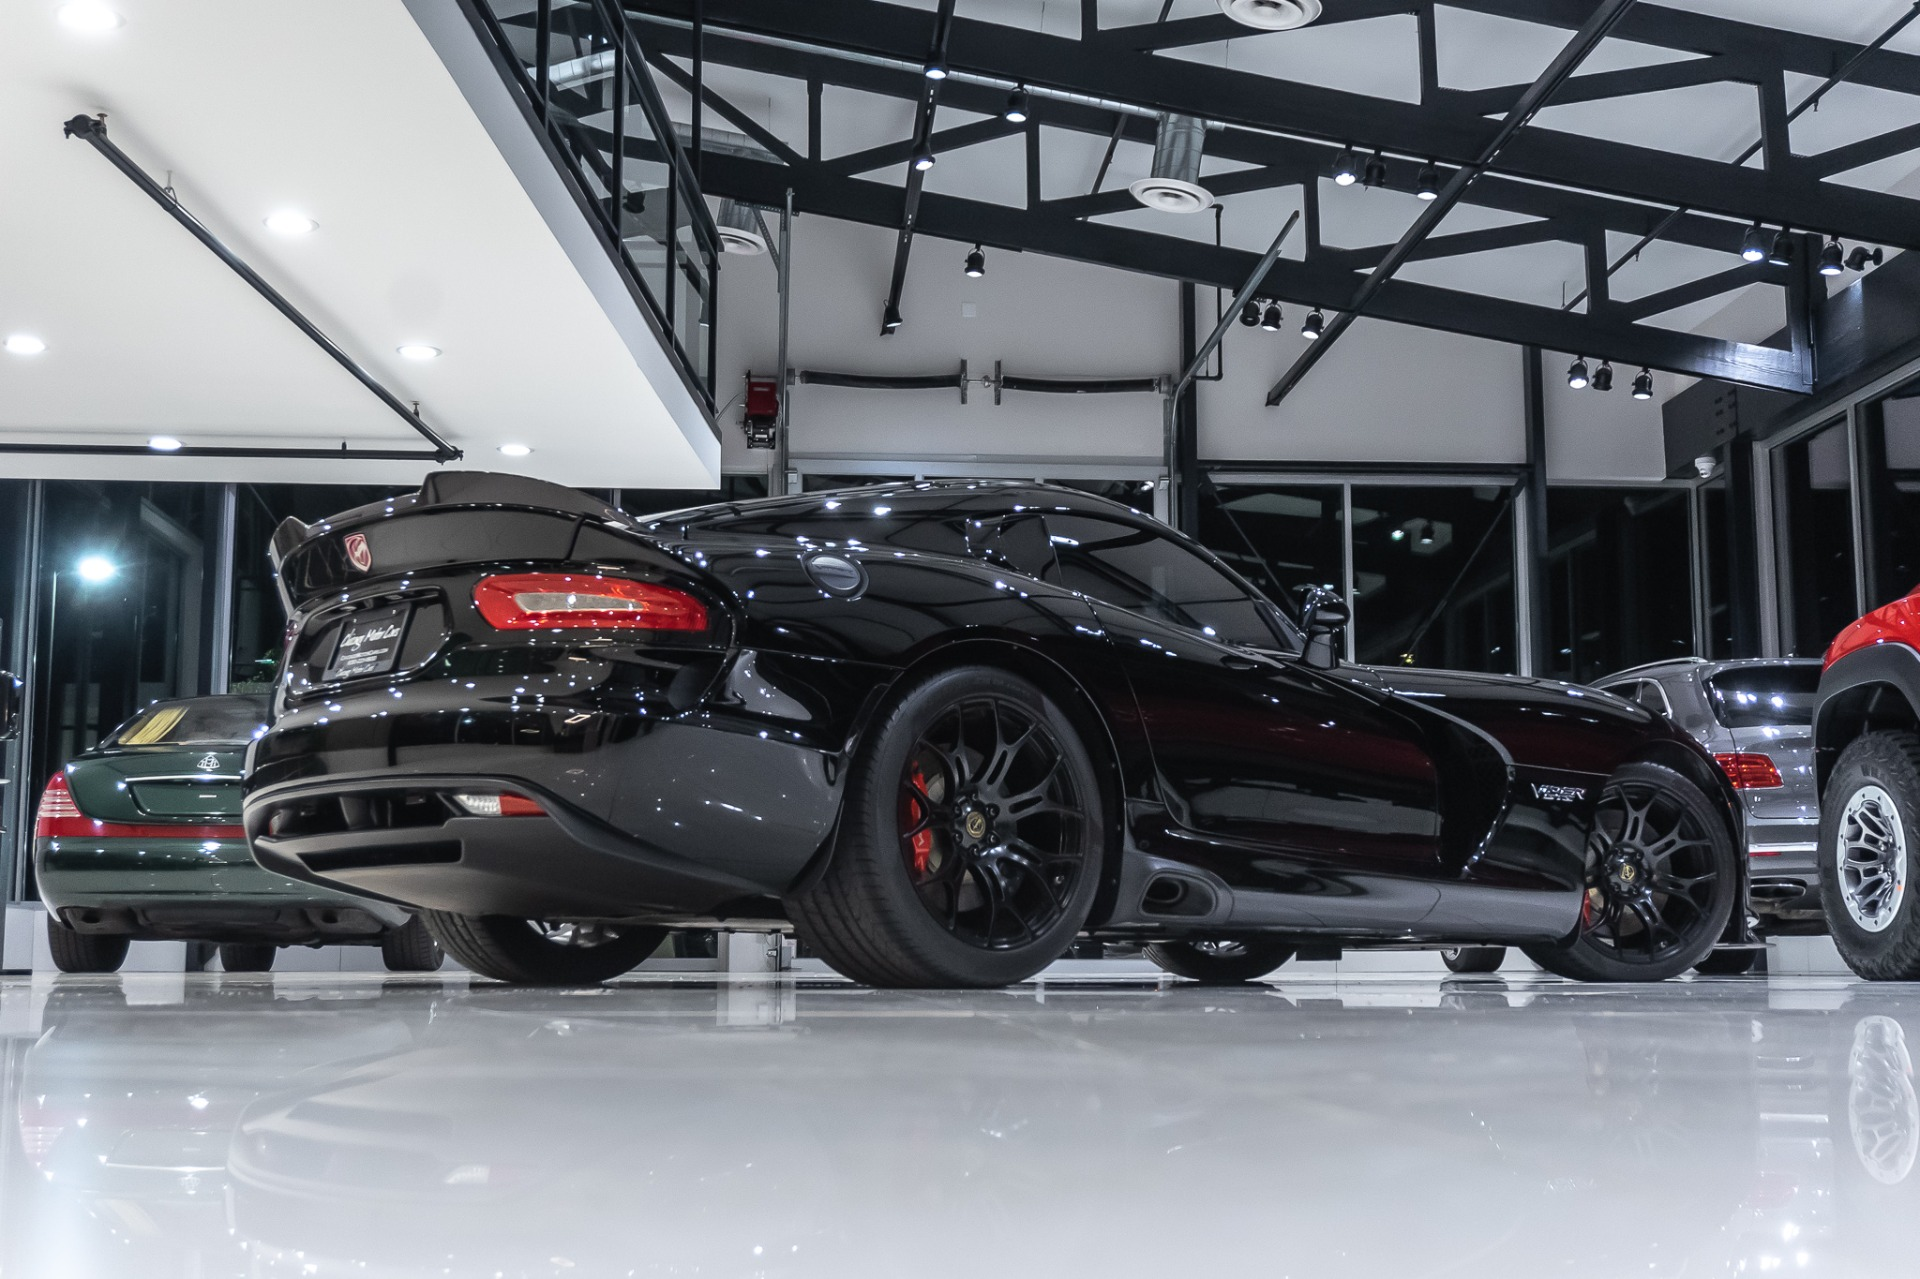 Used-2014-Dodge-SRT-Viper-GTS-Coupe-ADVANCED-CARBON-FIBER-AERO-PACKAGE